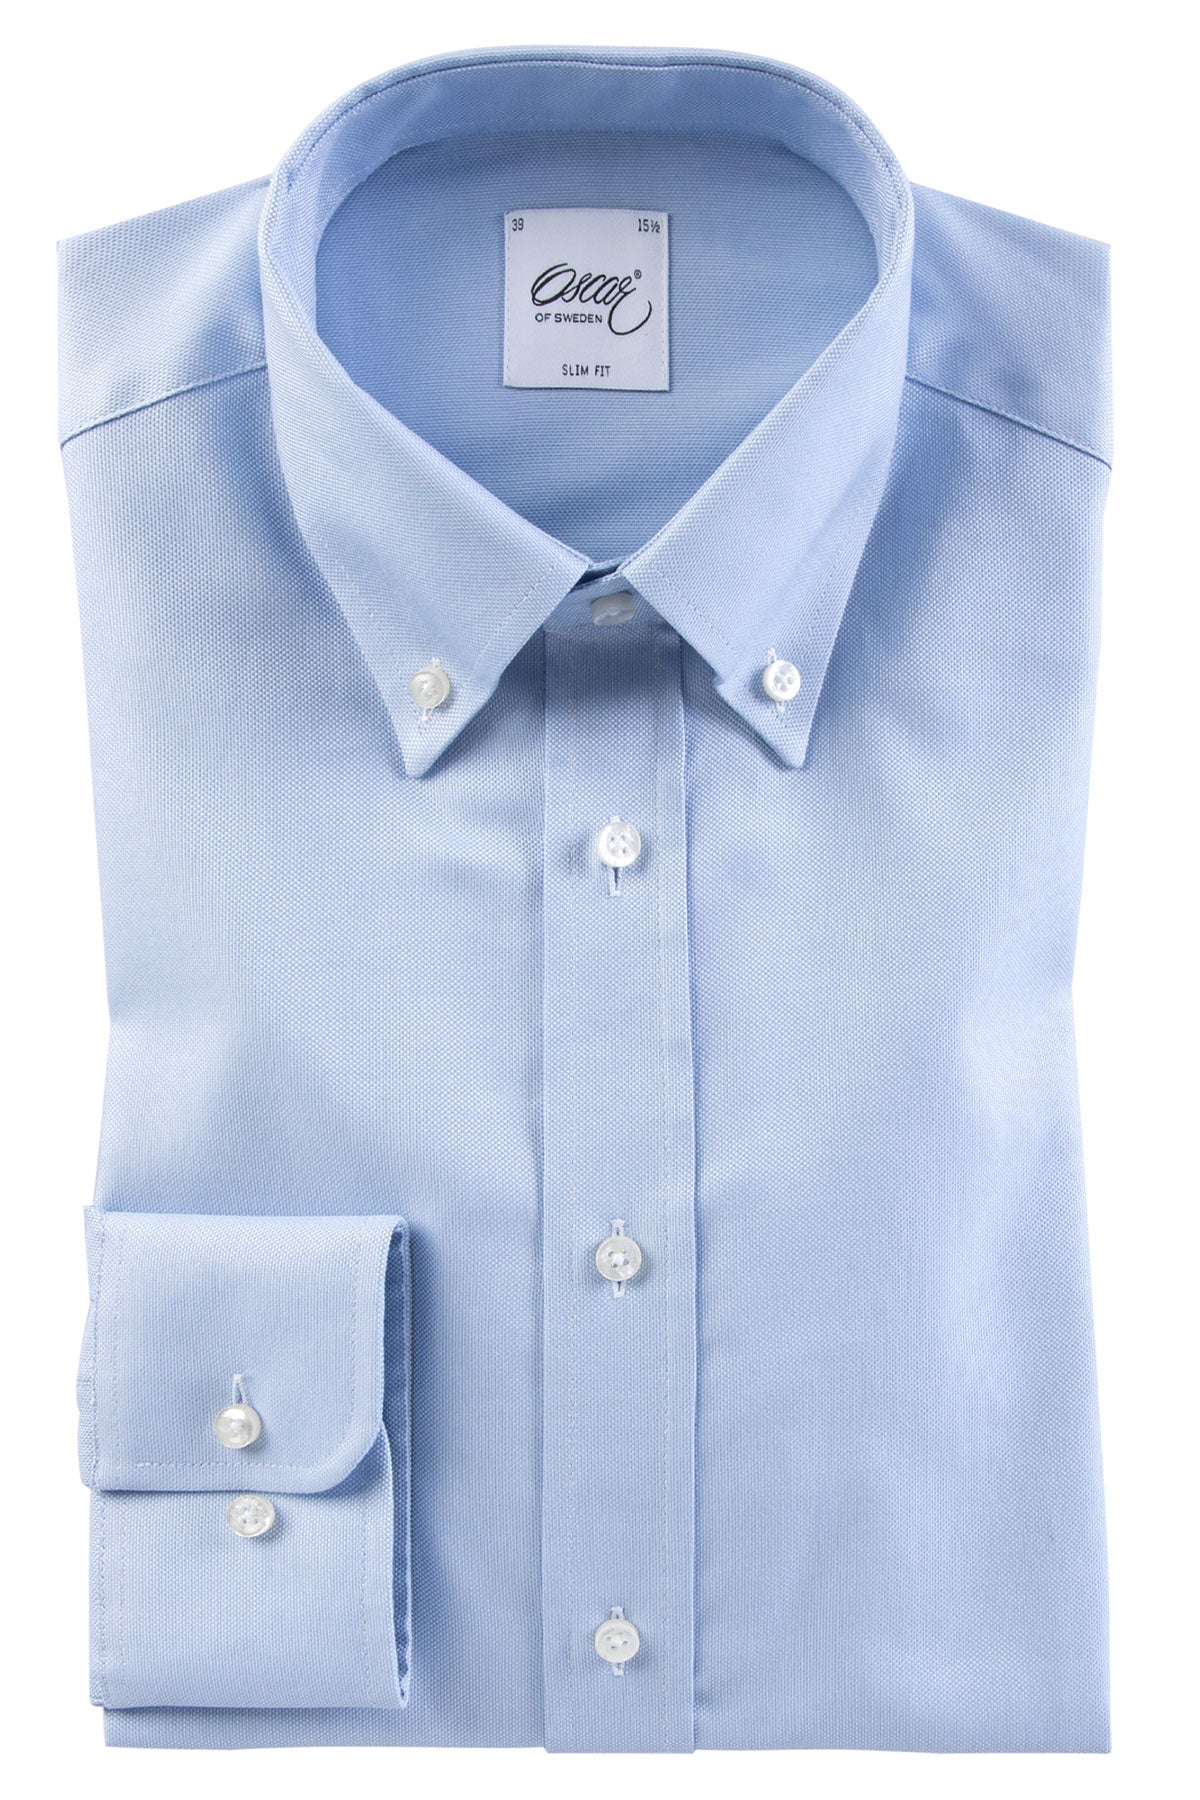 Washed light blue button-down slim fit shirt